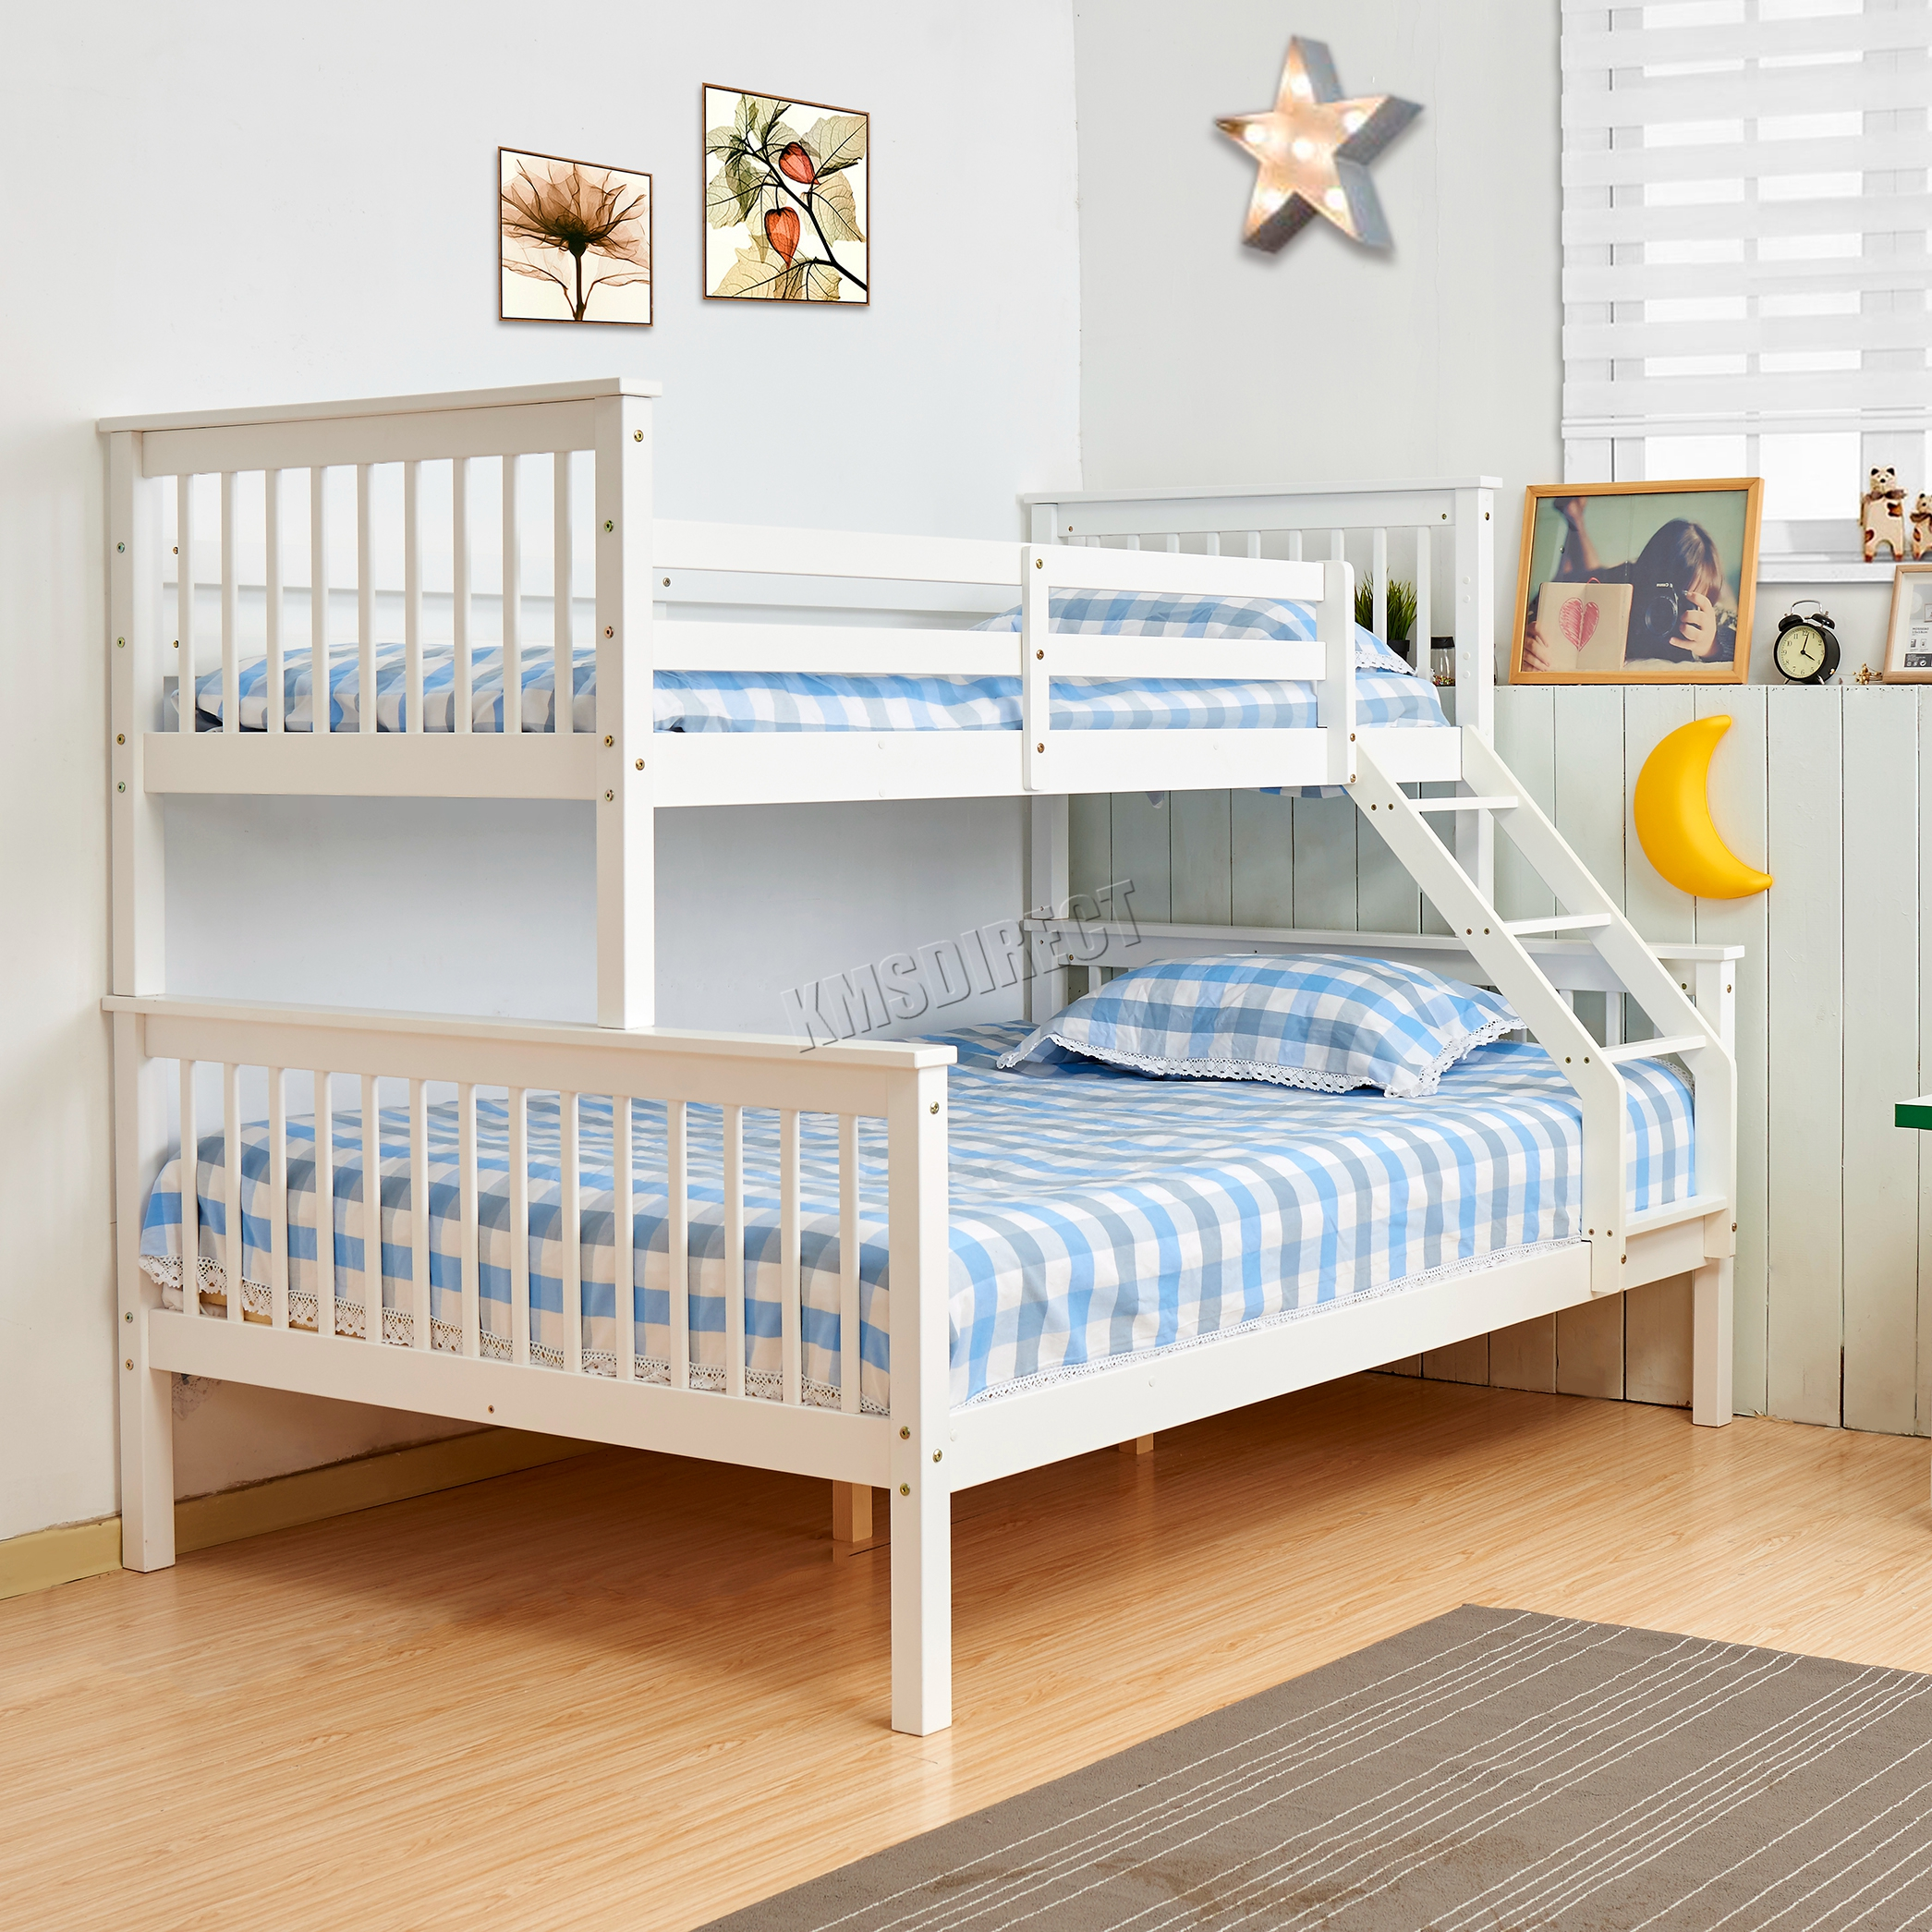 foxhunter lit superpos cadre en bois enfants triple sans matelas 0 9 m 1 2 ebay. Black Bedroom Furniture Sets. Home Design Ideas